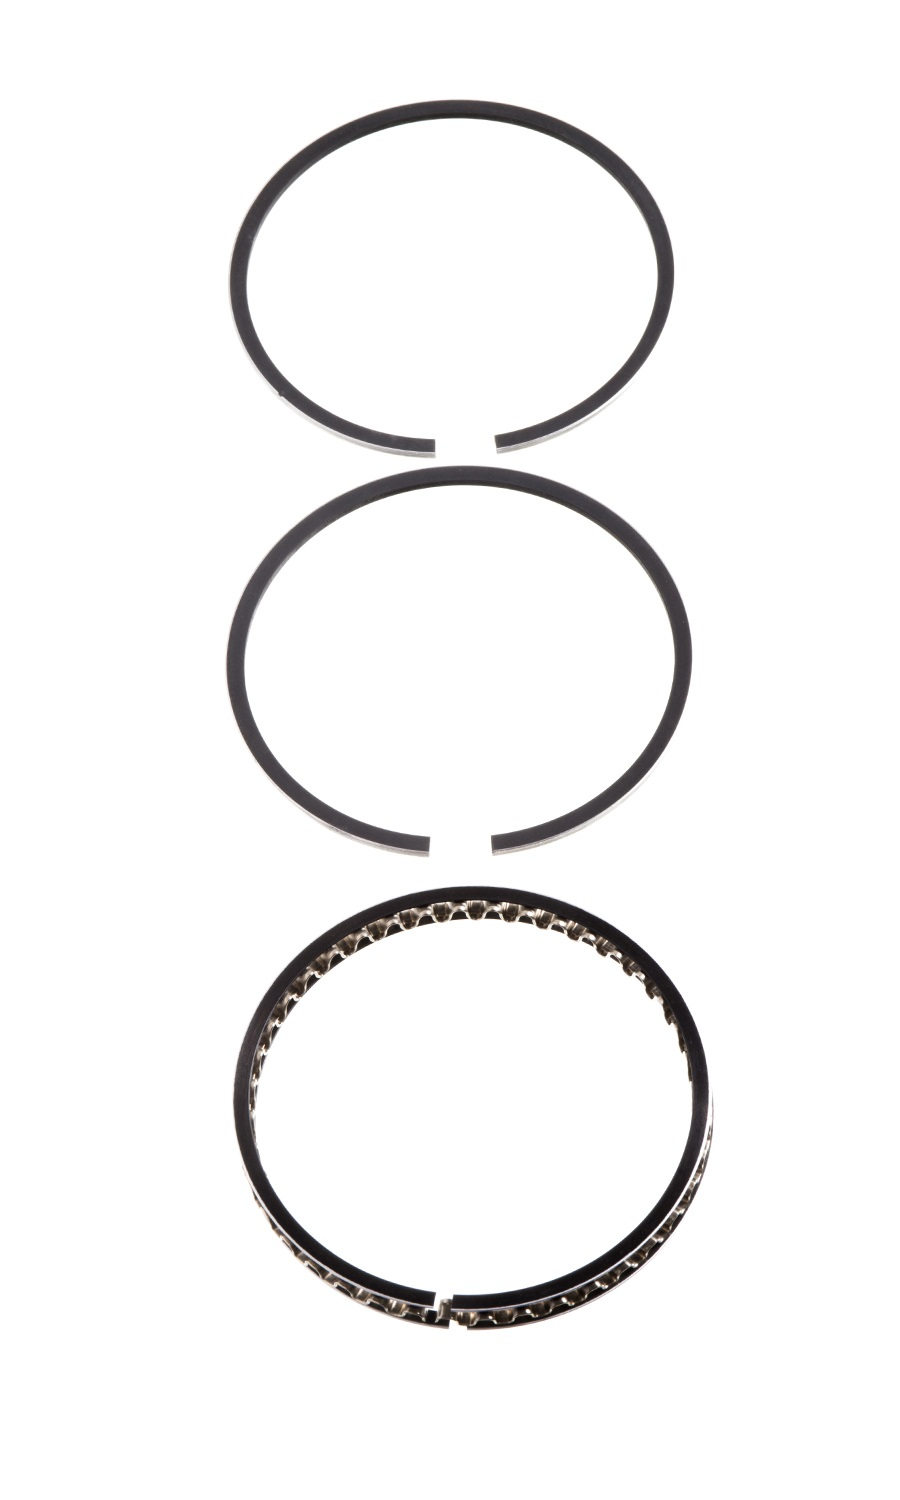 Hastings 2C673S030 Hasting Single Piston Ring Set